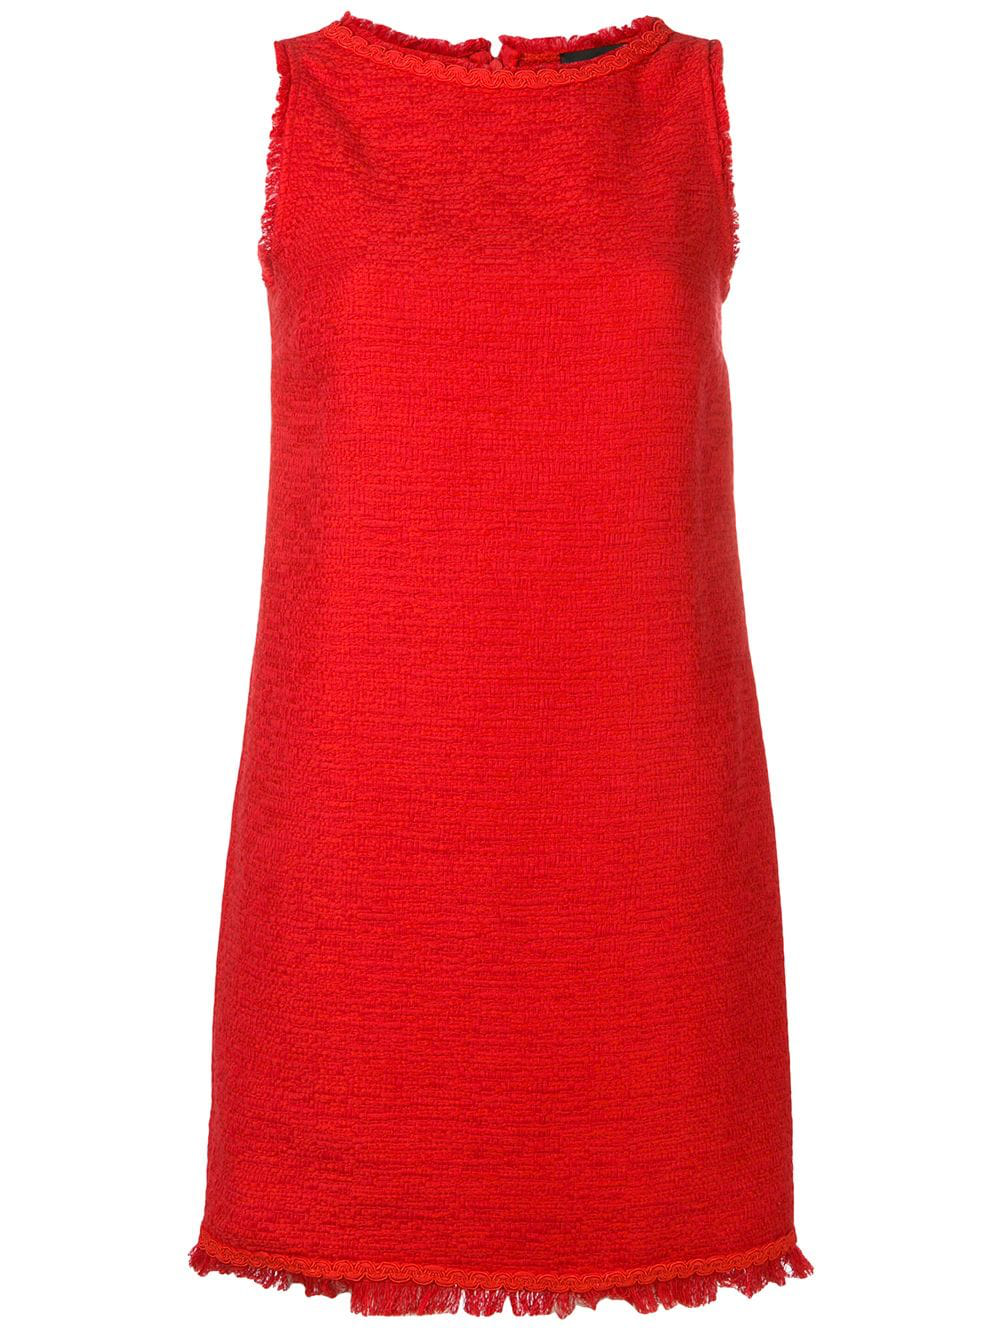 Red Tweed Dress